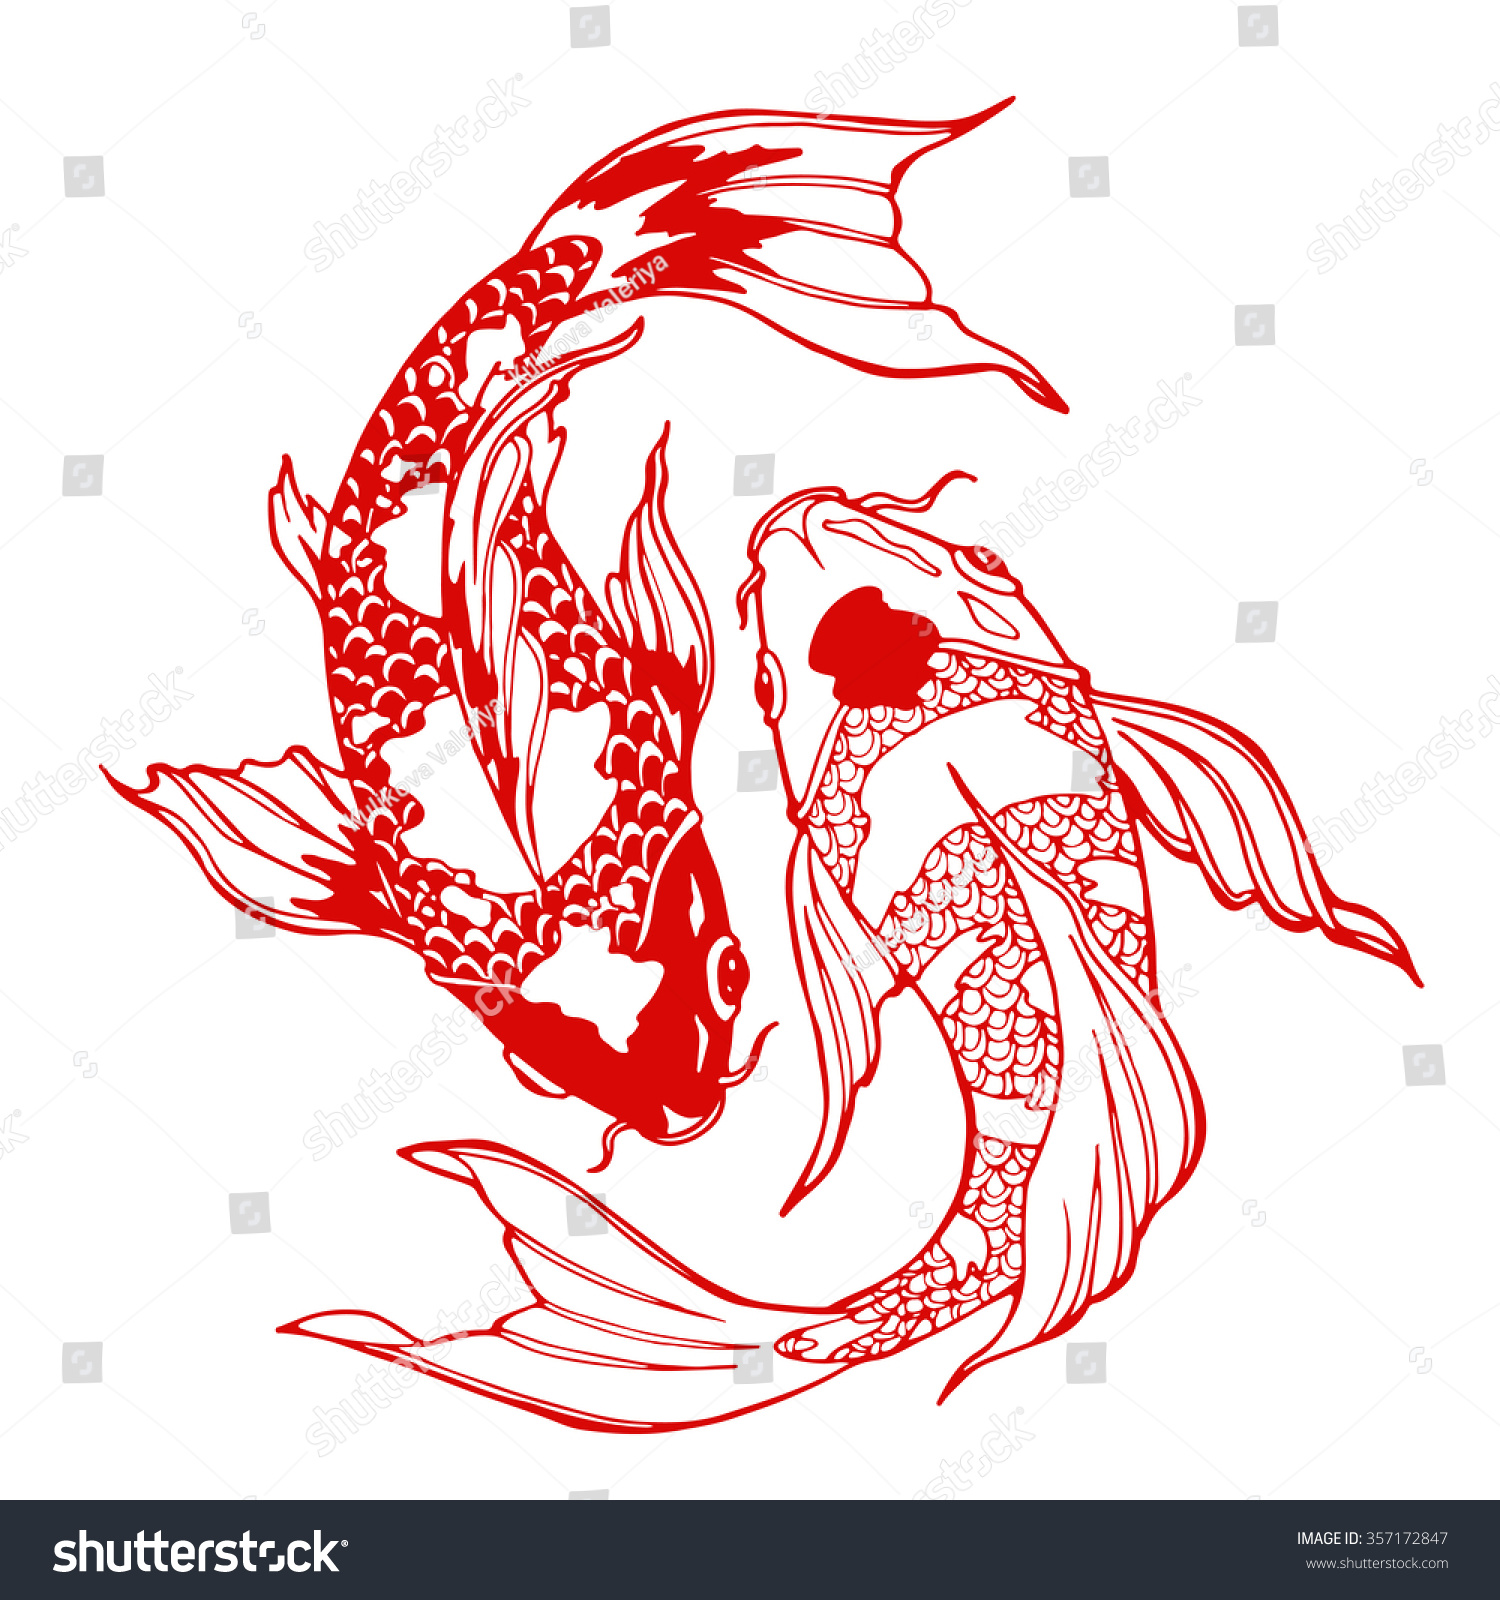 Illustration of koi carp coloring page yin yang for Koi meaning in english